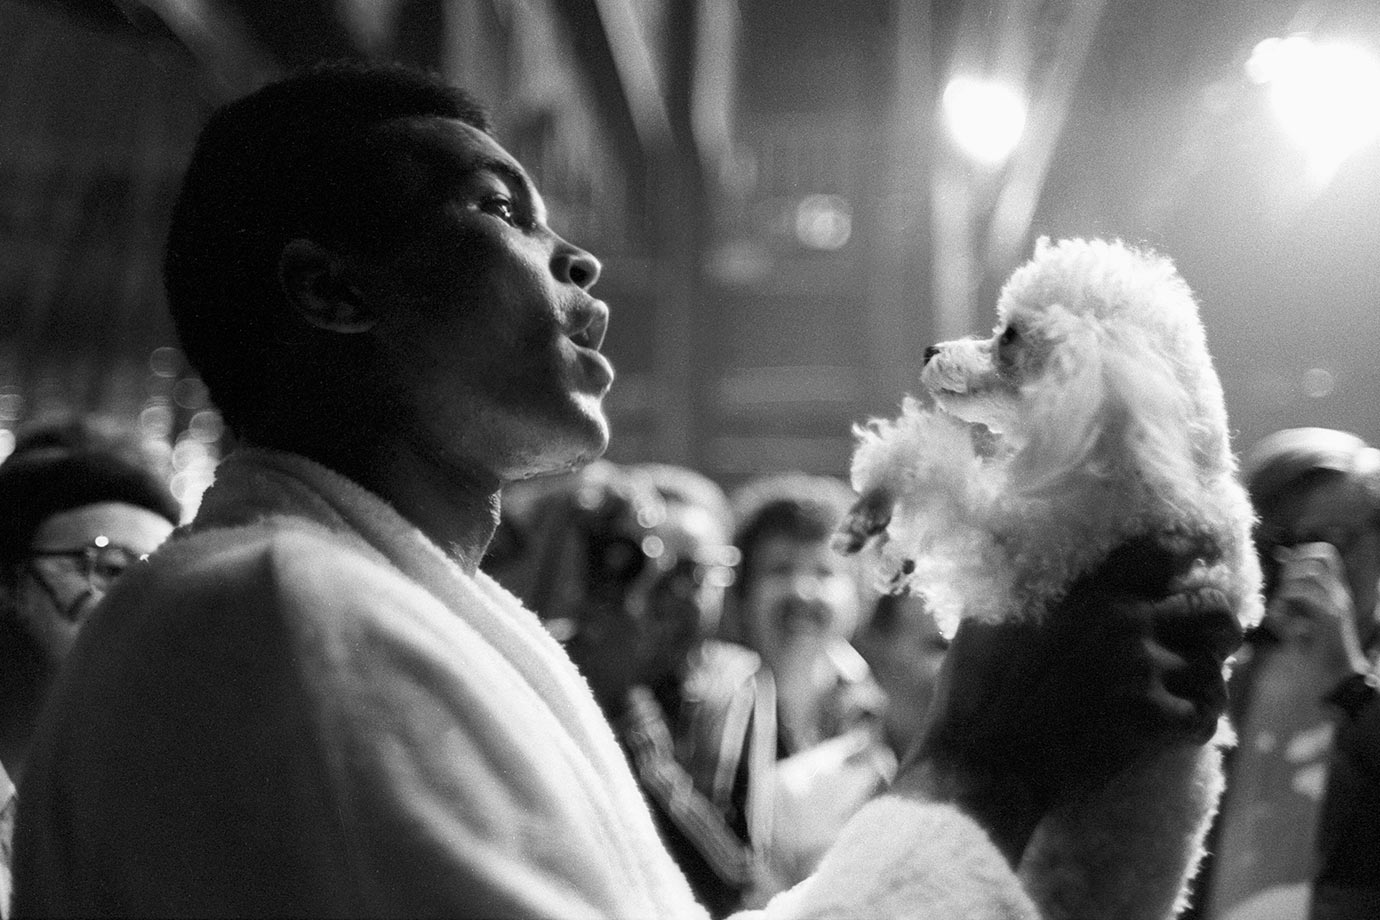 Before the fight with Bugner, Muhammad Ali enjoys a relaxed moment with a poodle at Caesars Palace Hotel. He won the fight with Bugner by unanimous decision.